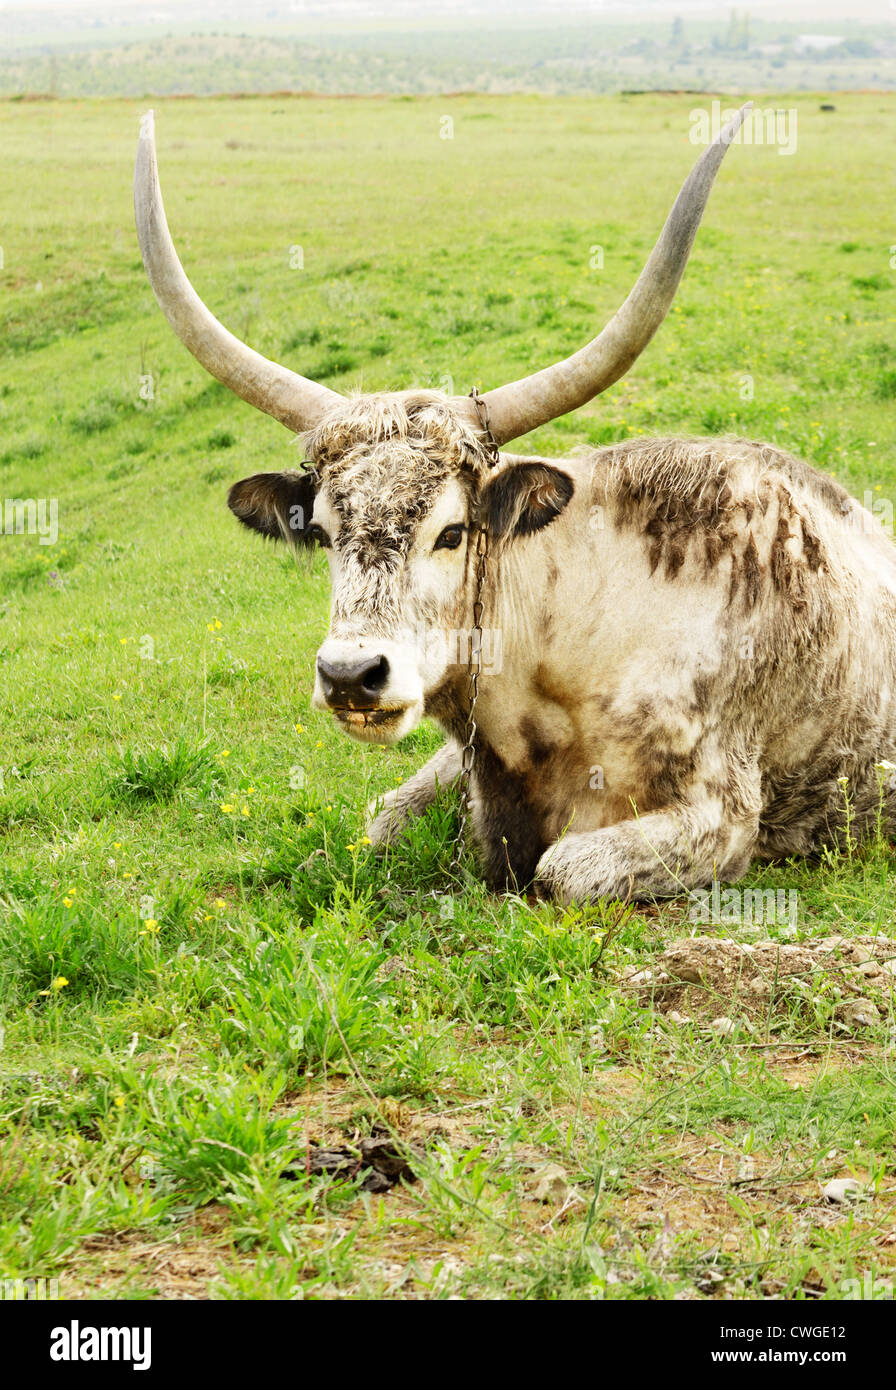 Long horned hungarian cow grazing at pasture - Stock Image